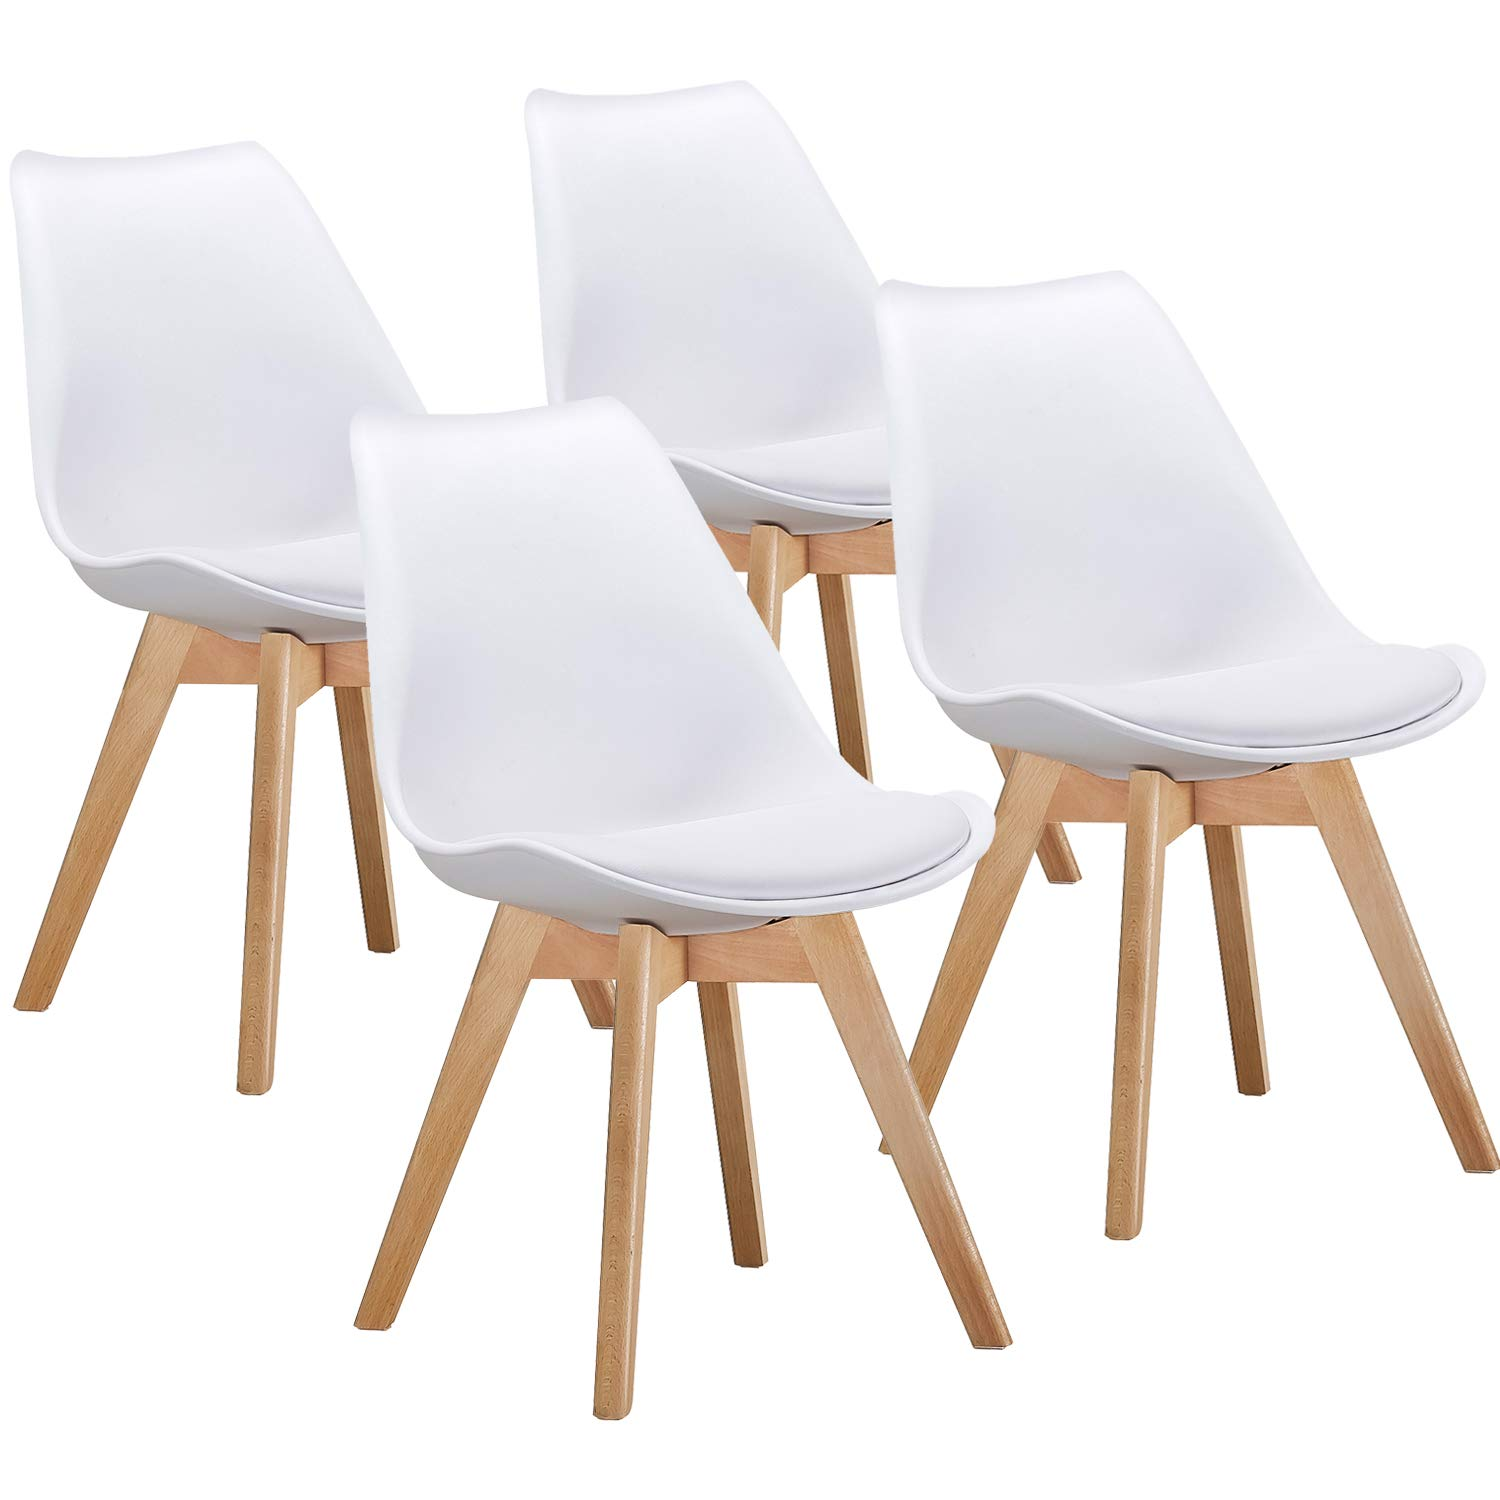 VECELO Retro Dining Side Mid Century Modern Chairs Durable PU Cushion with Solid Wooden Legs, Set of 4, White by VECELO